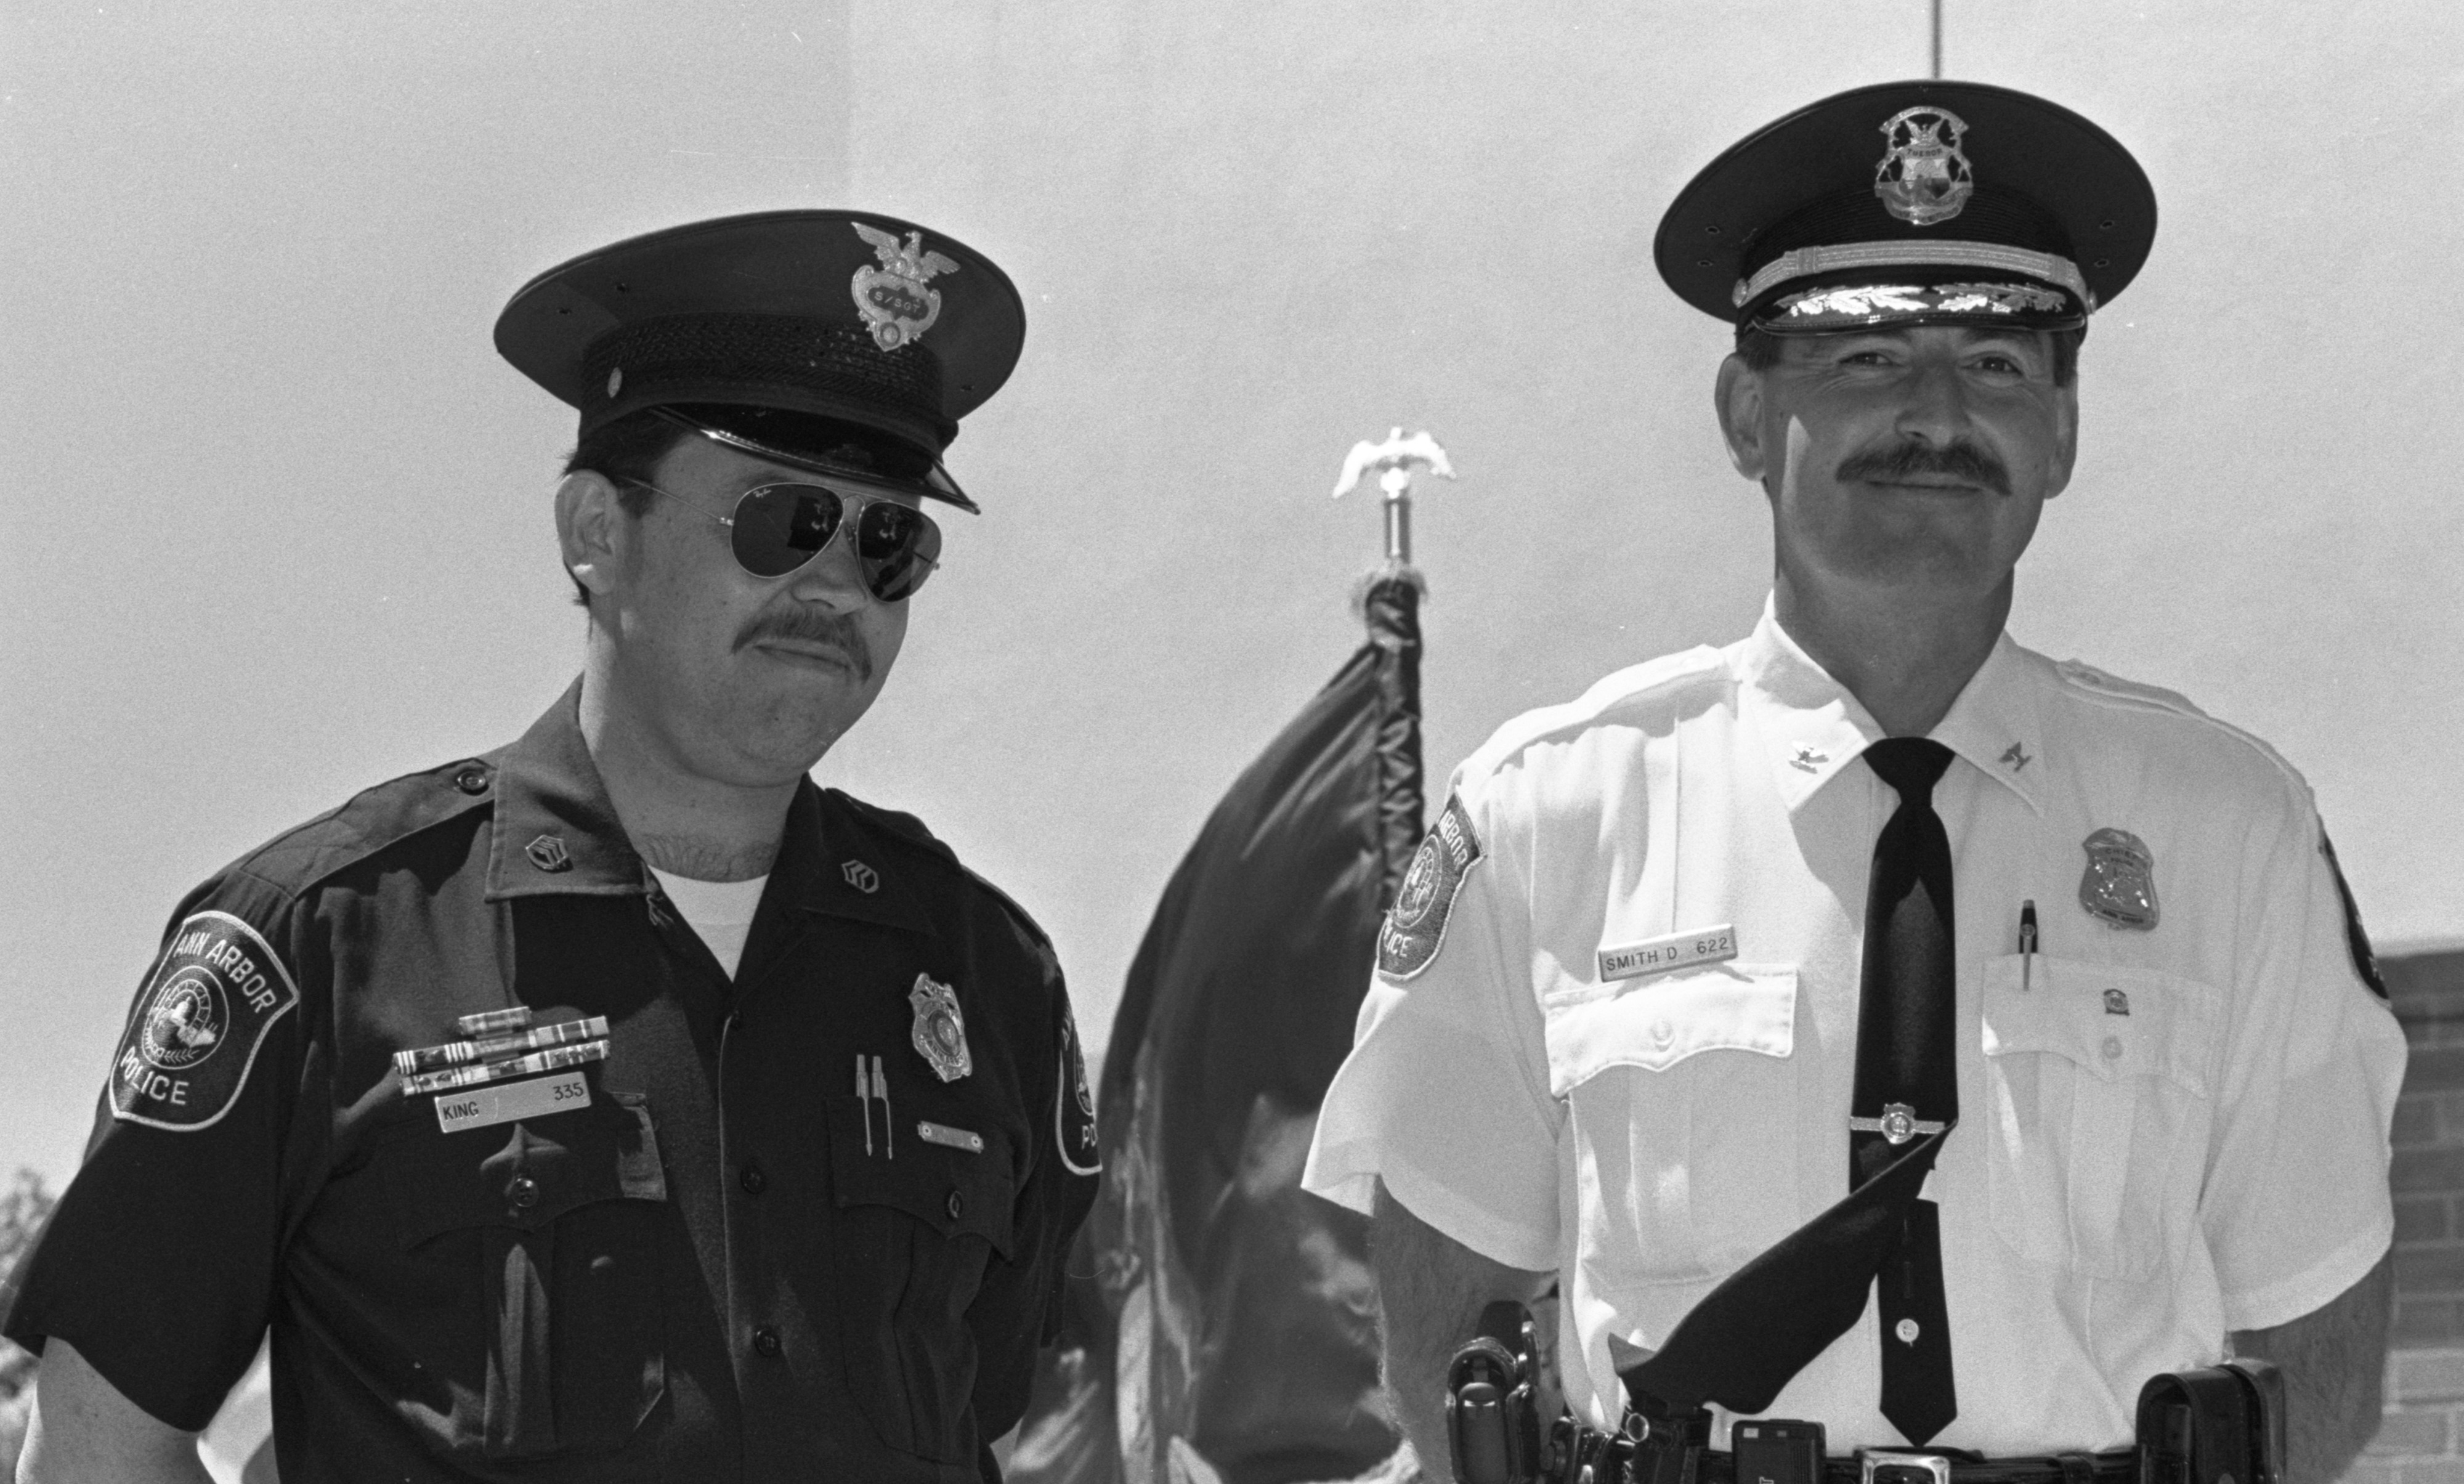 Sergeant John King Honored At Ann Arbor Police Department Awards Ceremony, June 1991 image